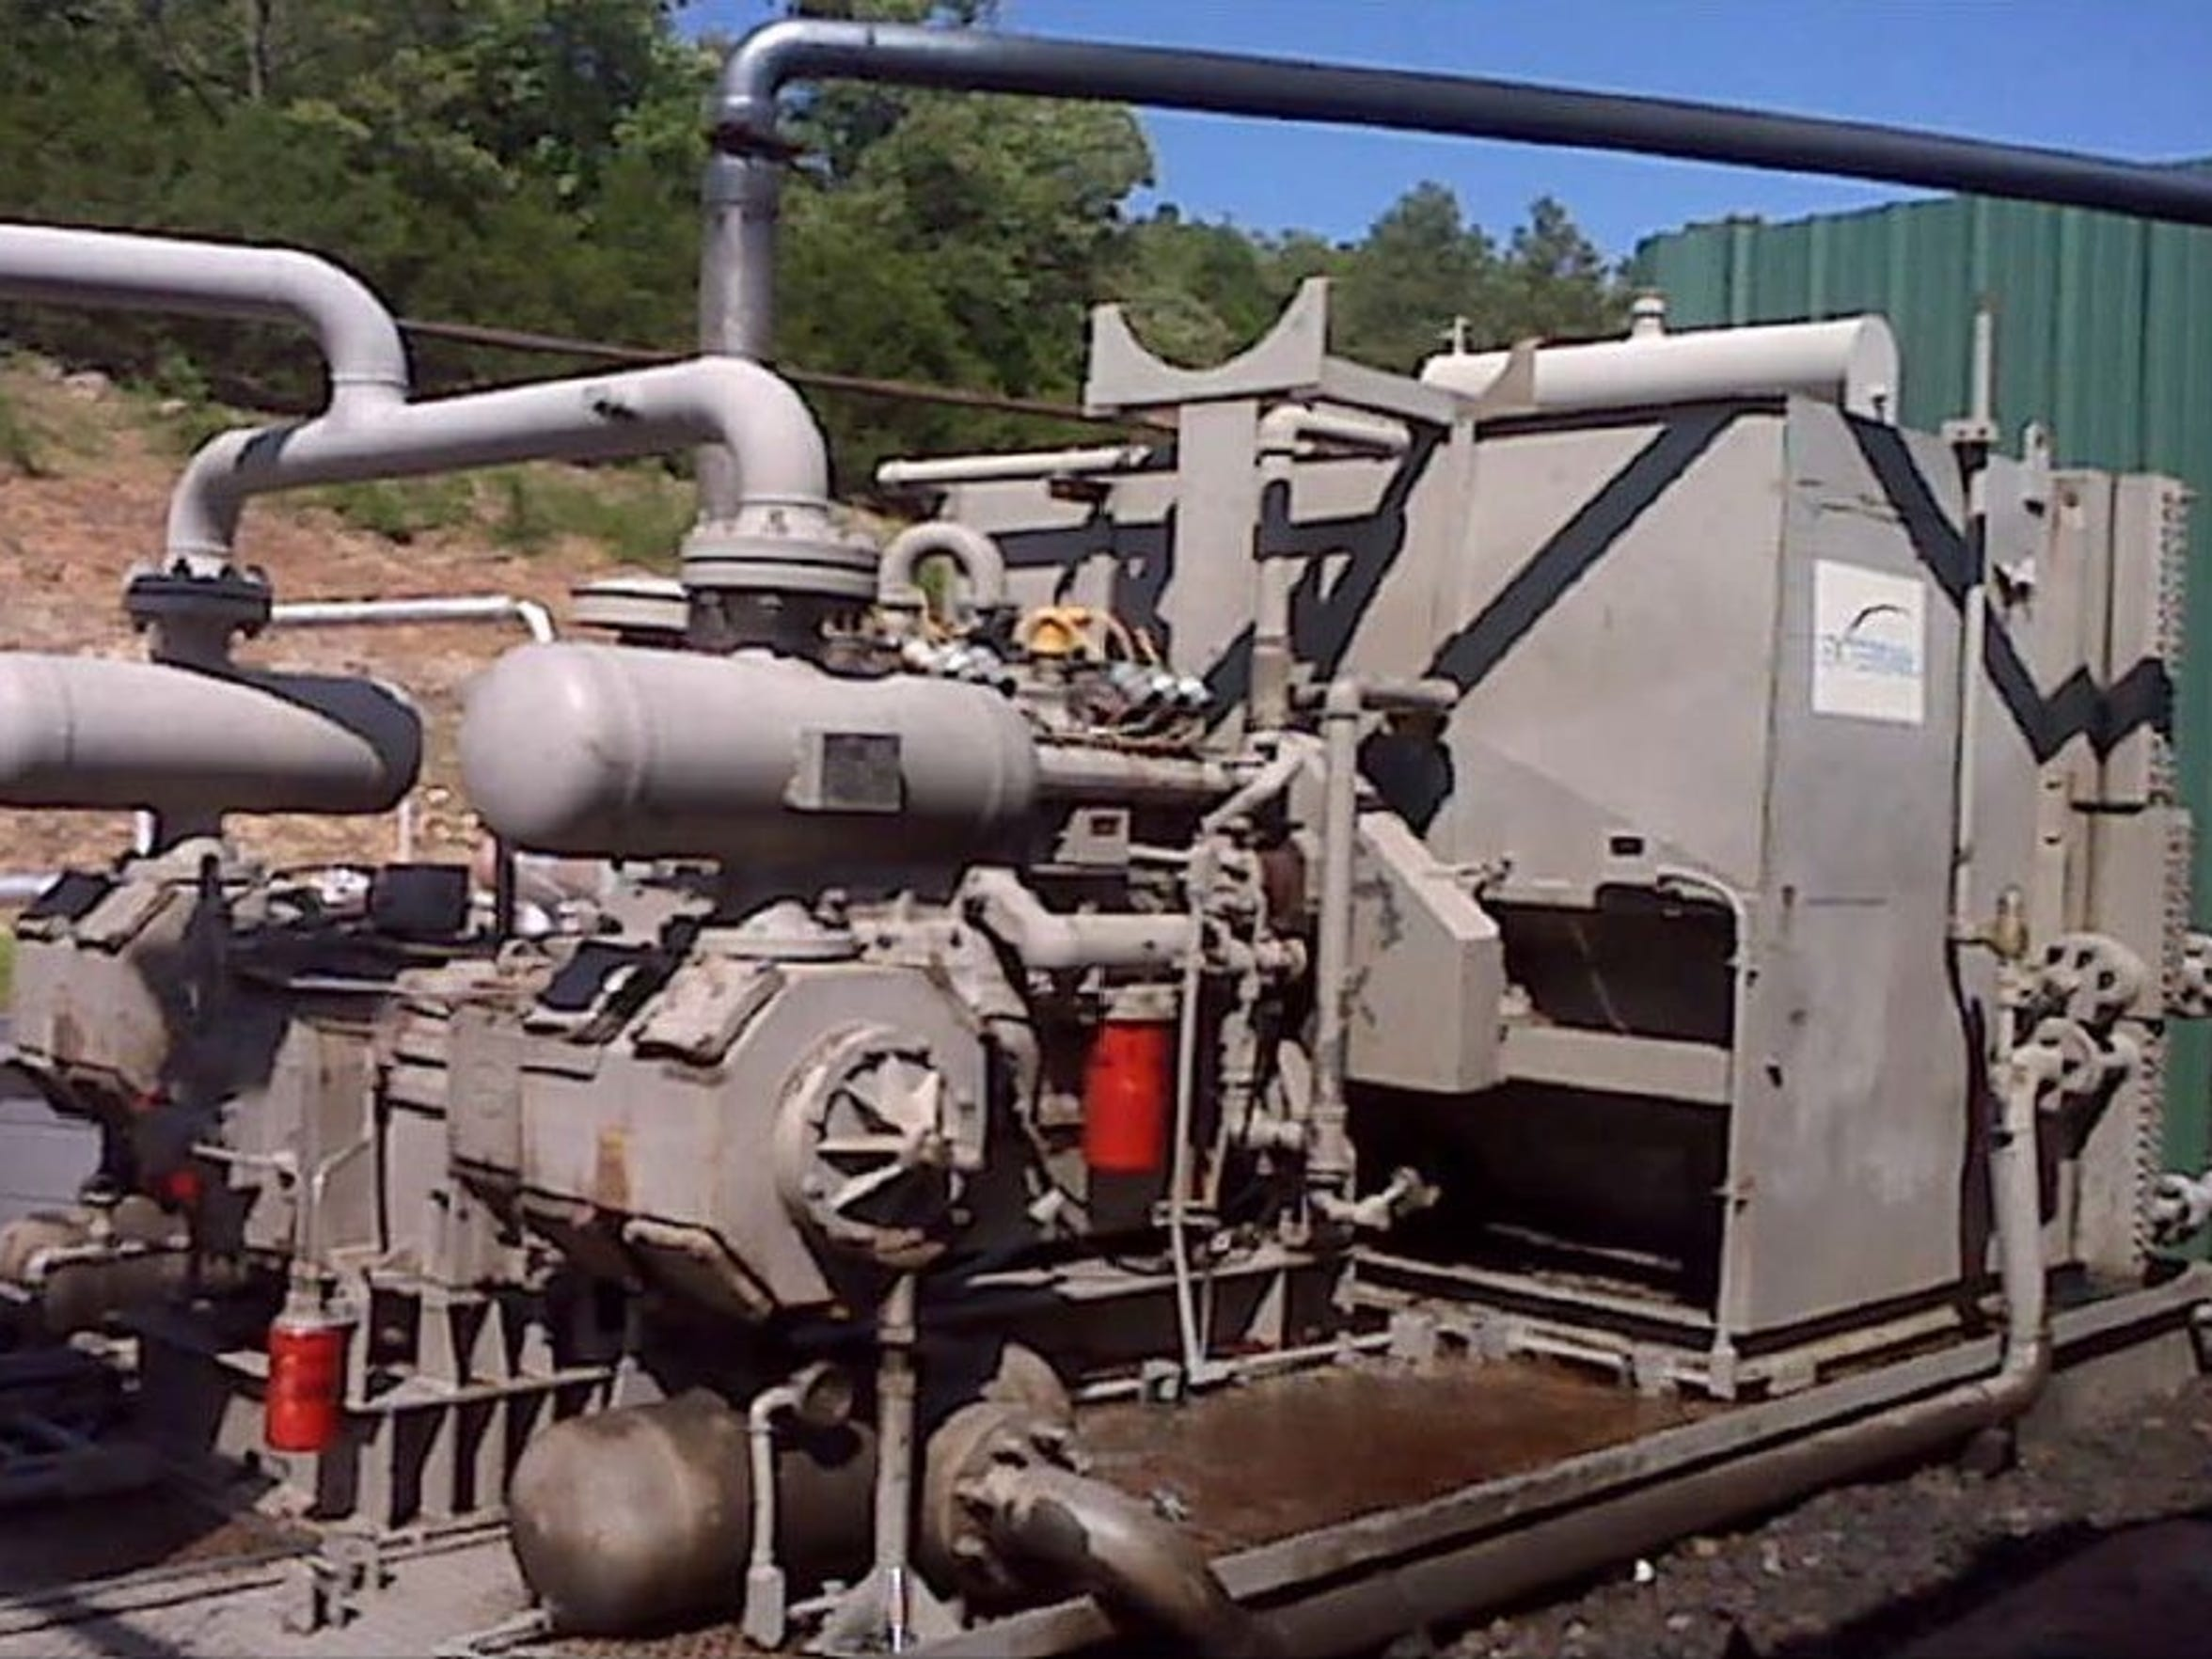 Several oil and gas equipment have in Eddy County have